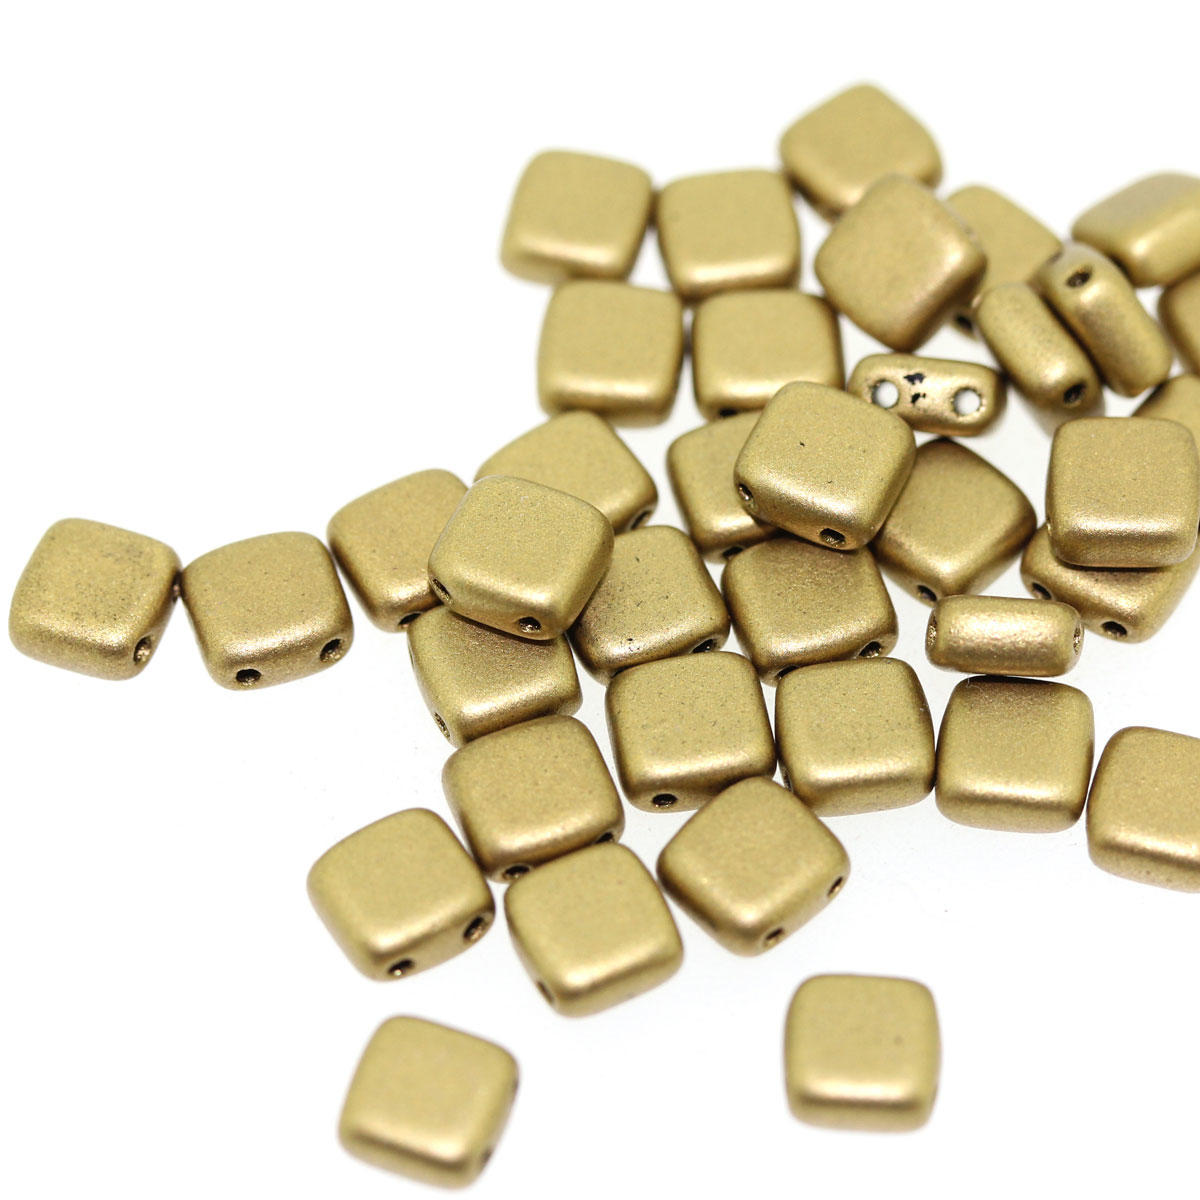 Gold Two Holed Flat Square Glass Bead